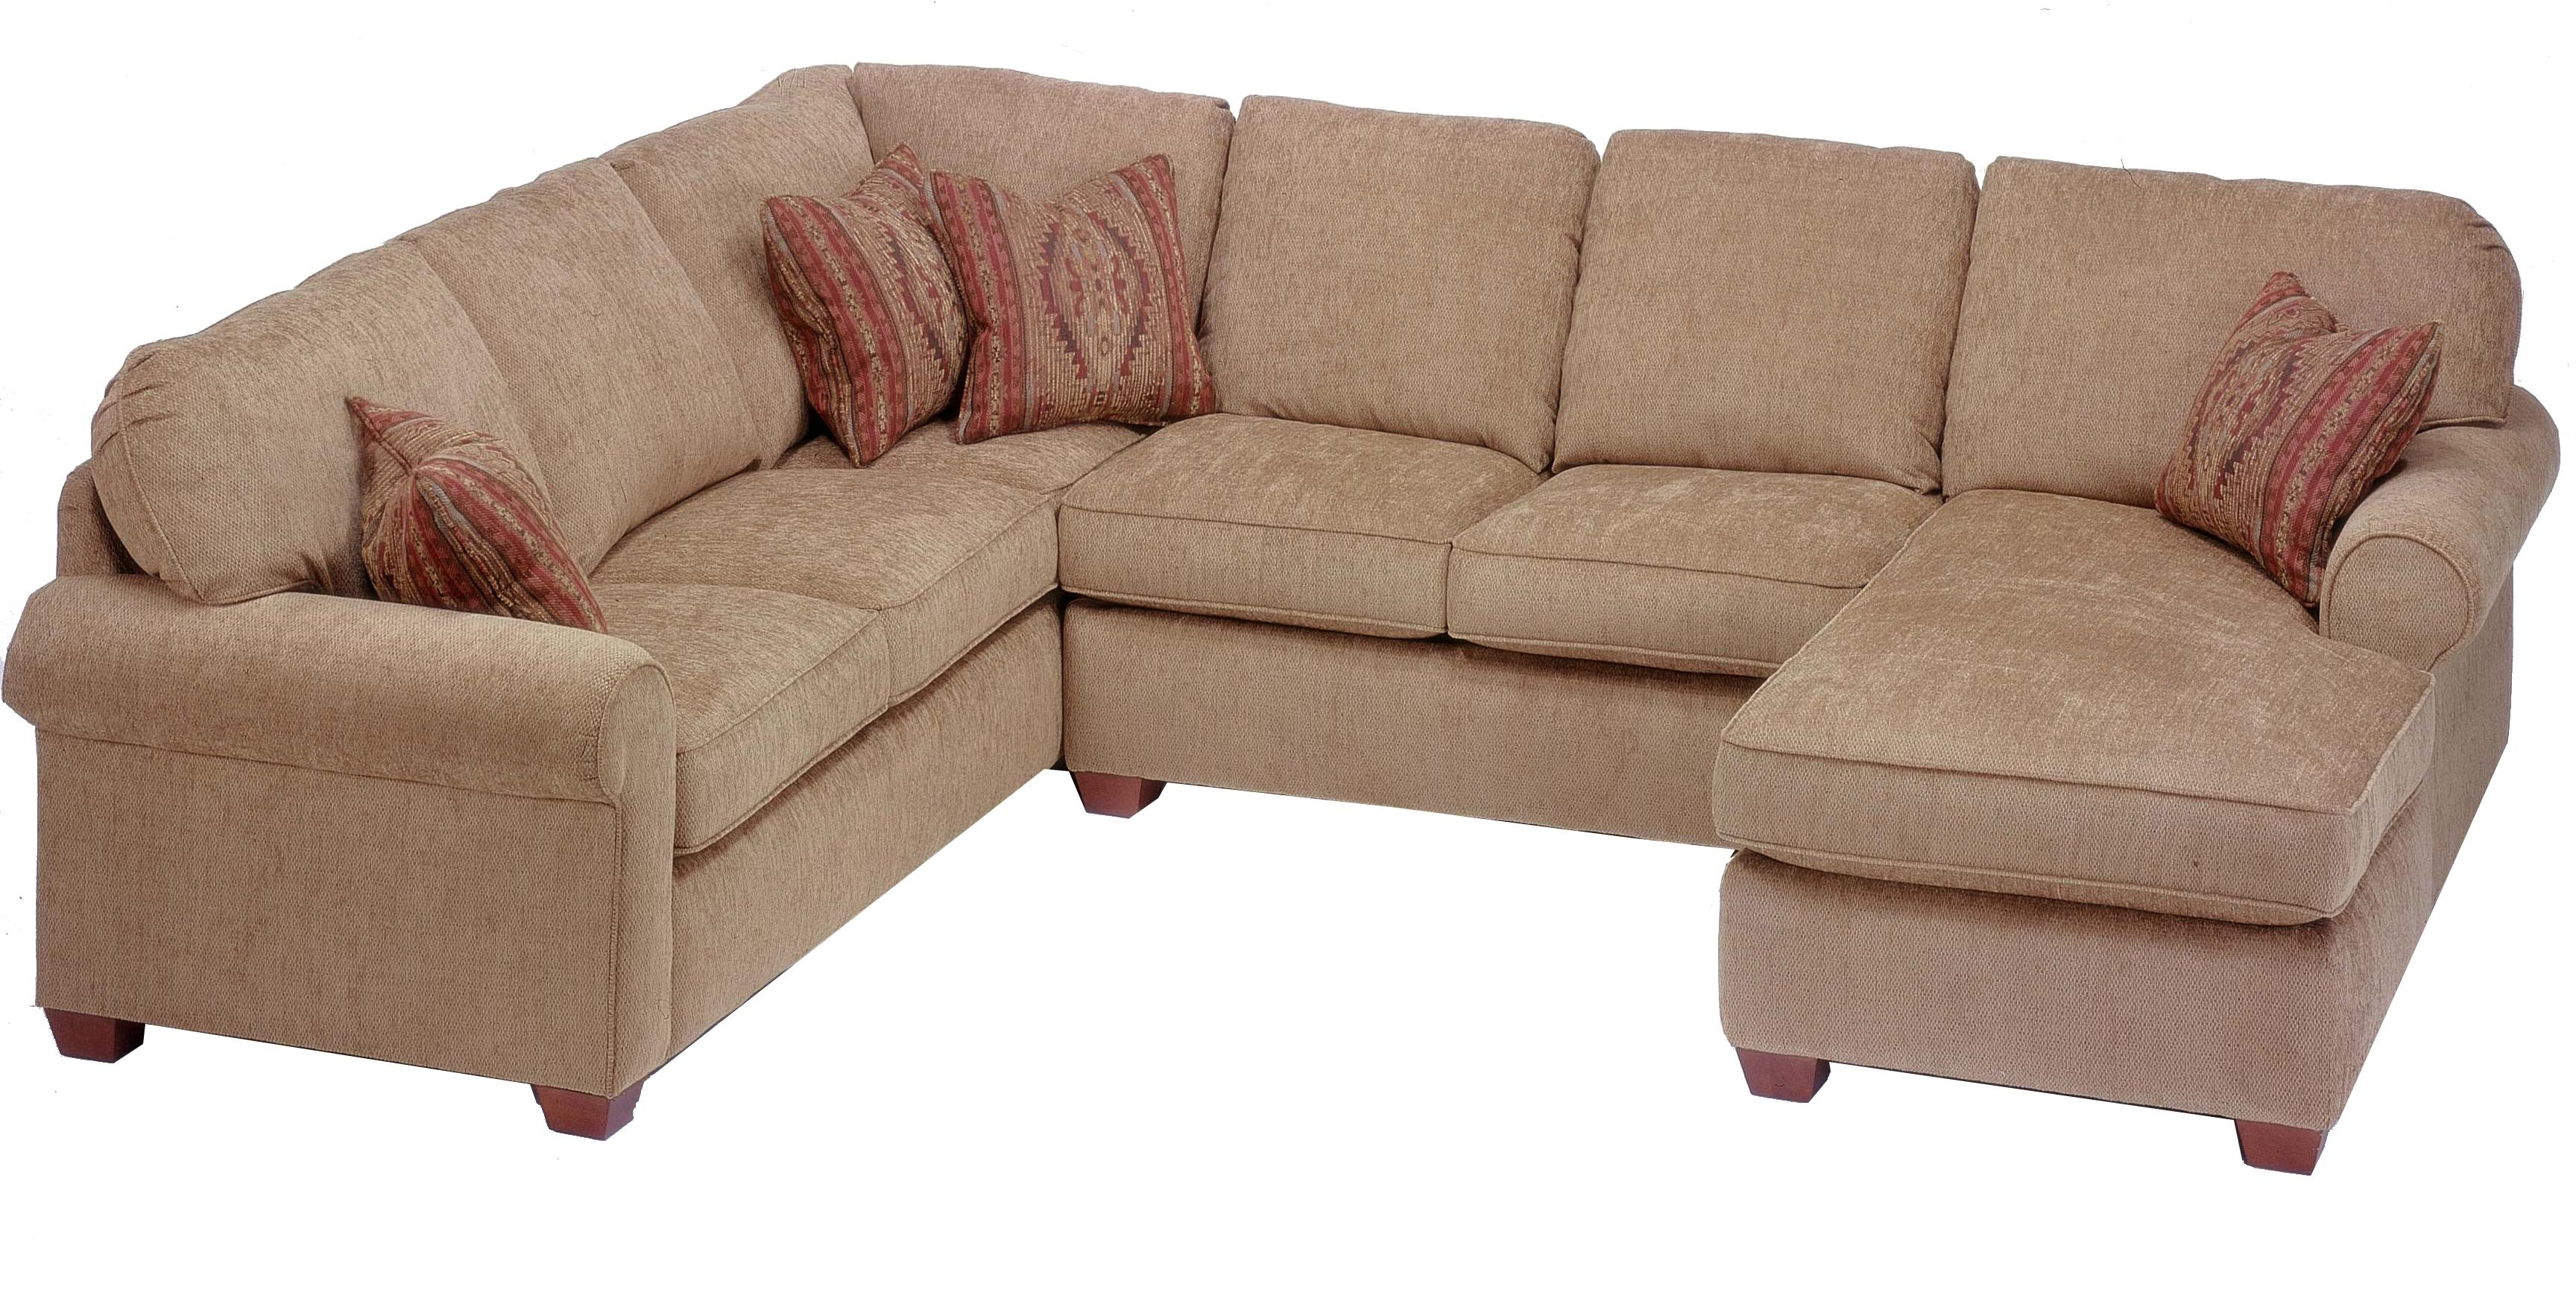 Flexsteel Thornton 3 Piece Sectional With Chaise – Ahfa – Sofa In Most Recent Jackson Tn Sectional Sofas (View 8 of 15)